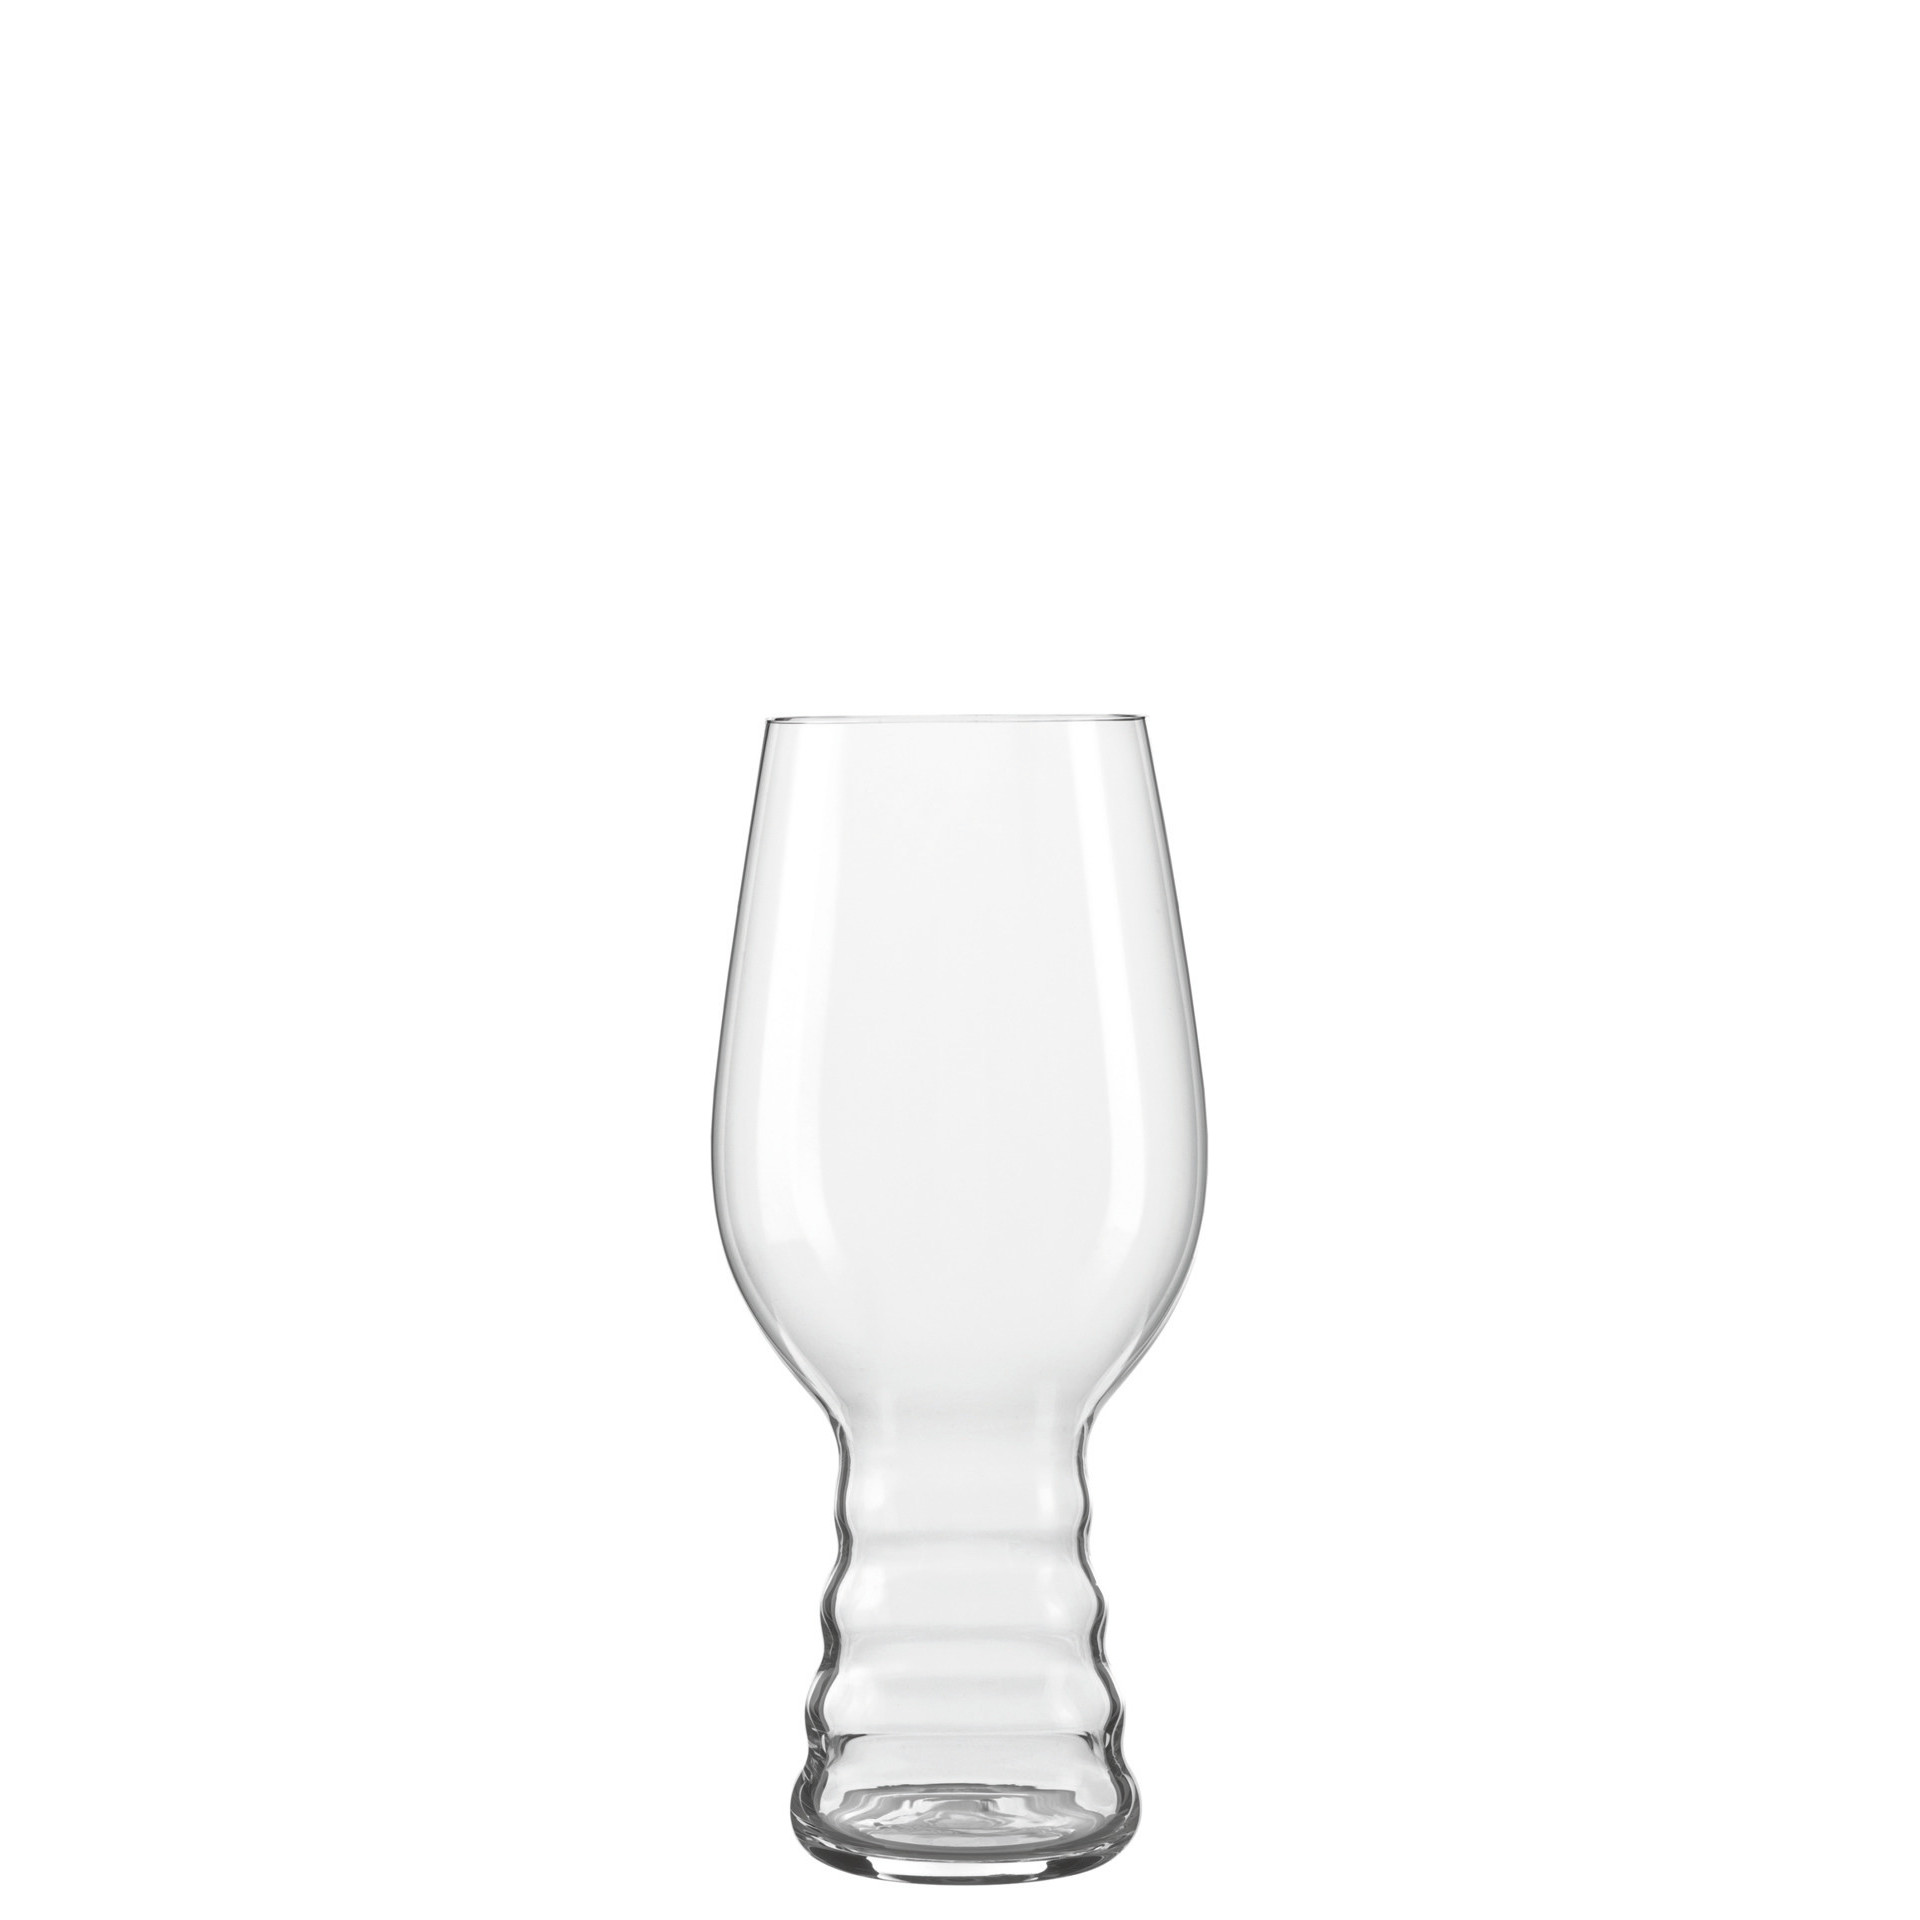 Craft Beer Glasses, IPA Glas klein ø 74 mm / 0,41 l